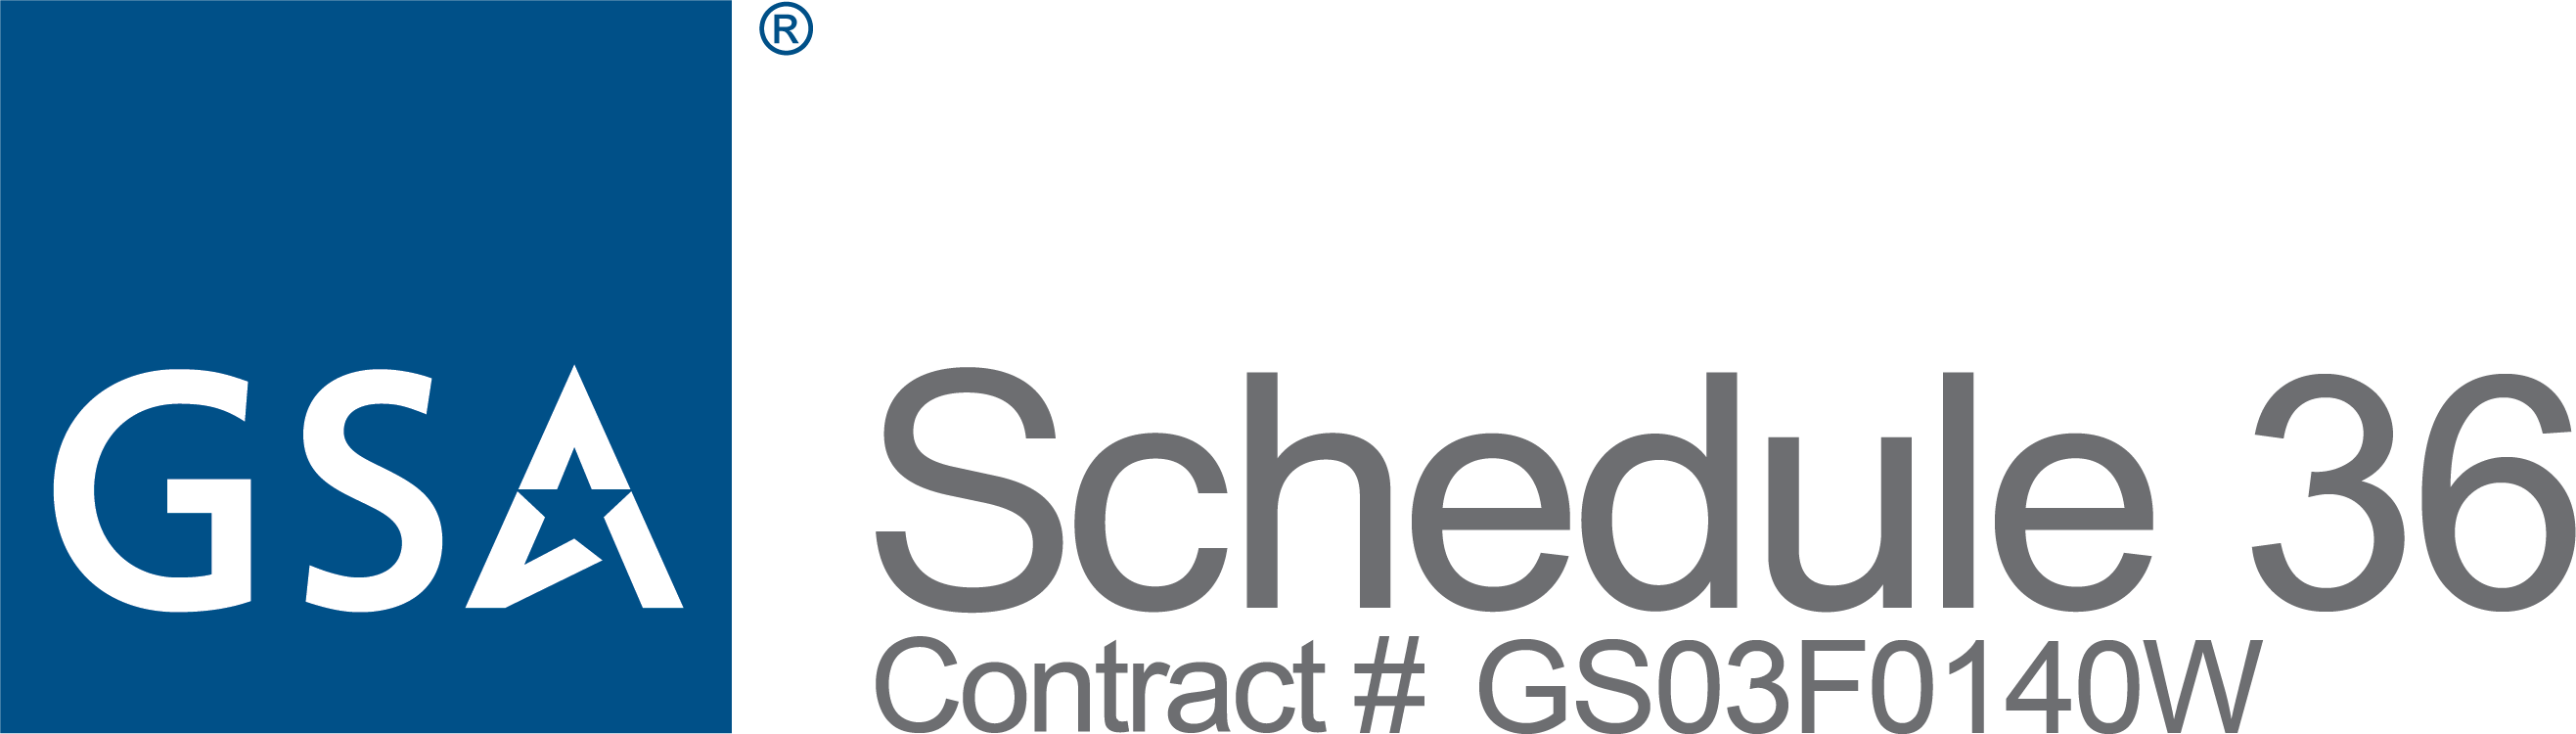 GSA Schedule 36 Contract GS03F0140W